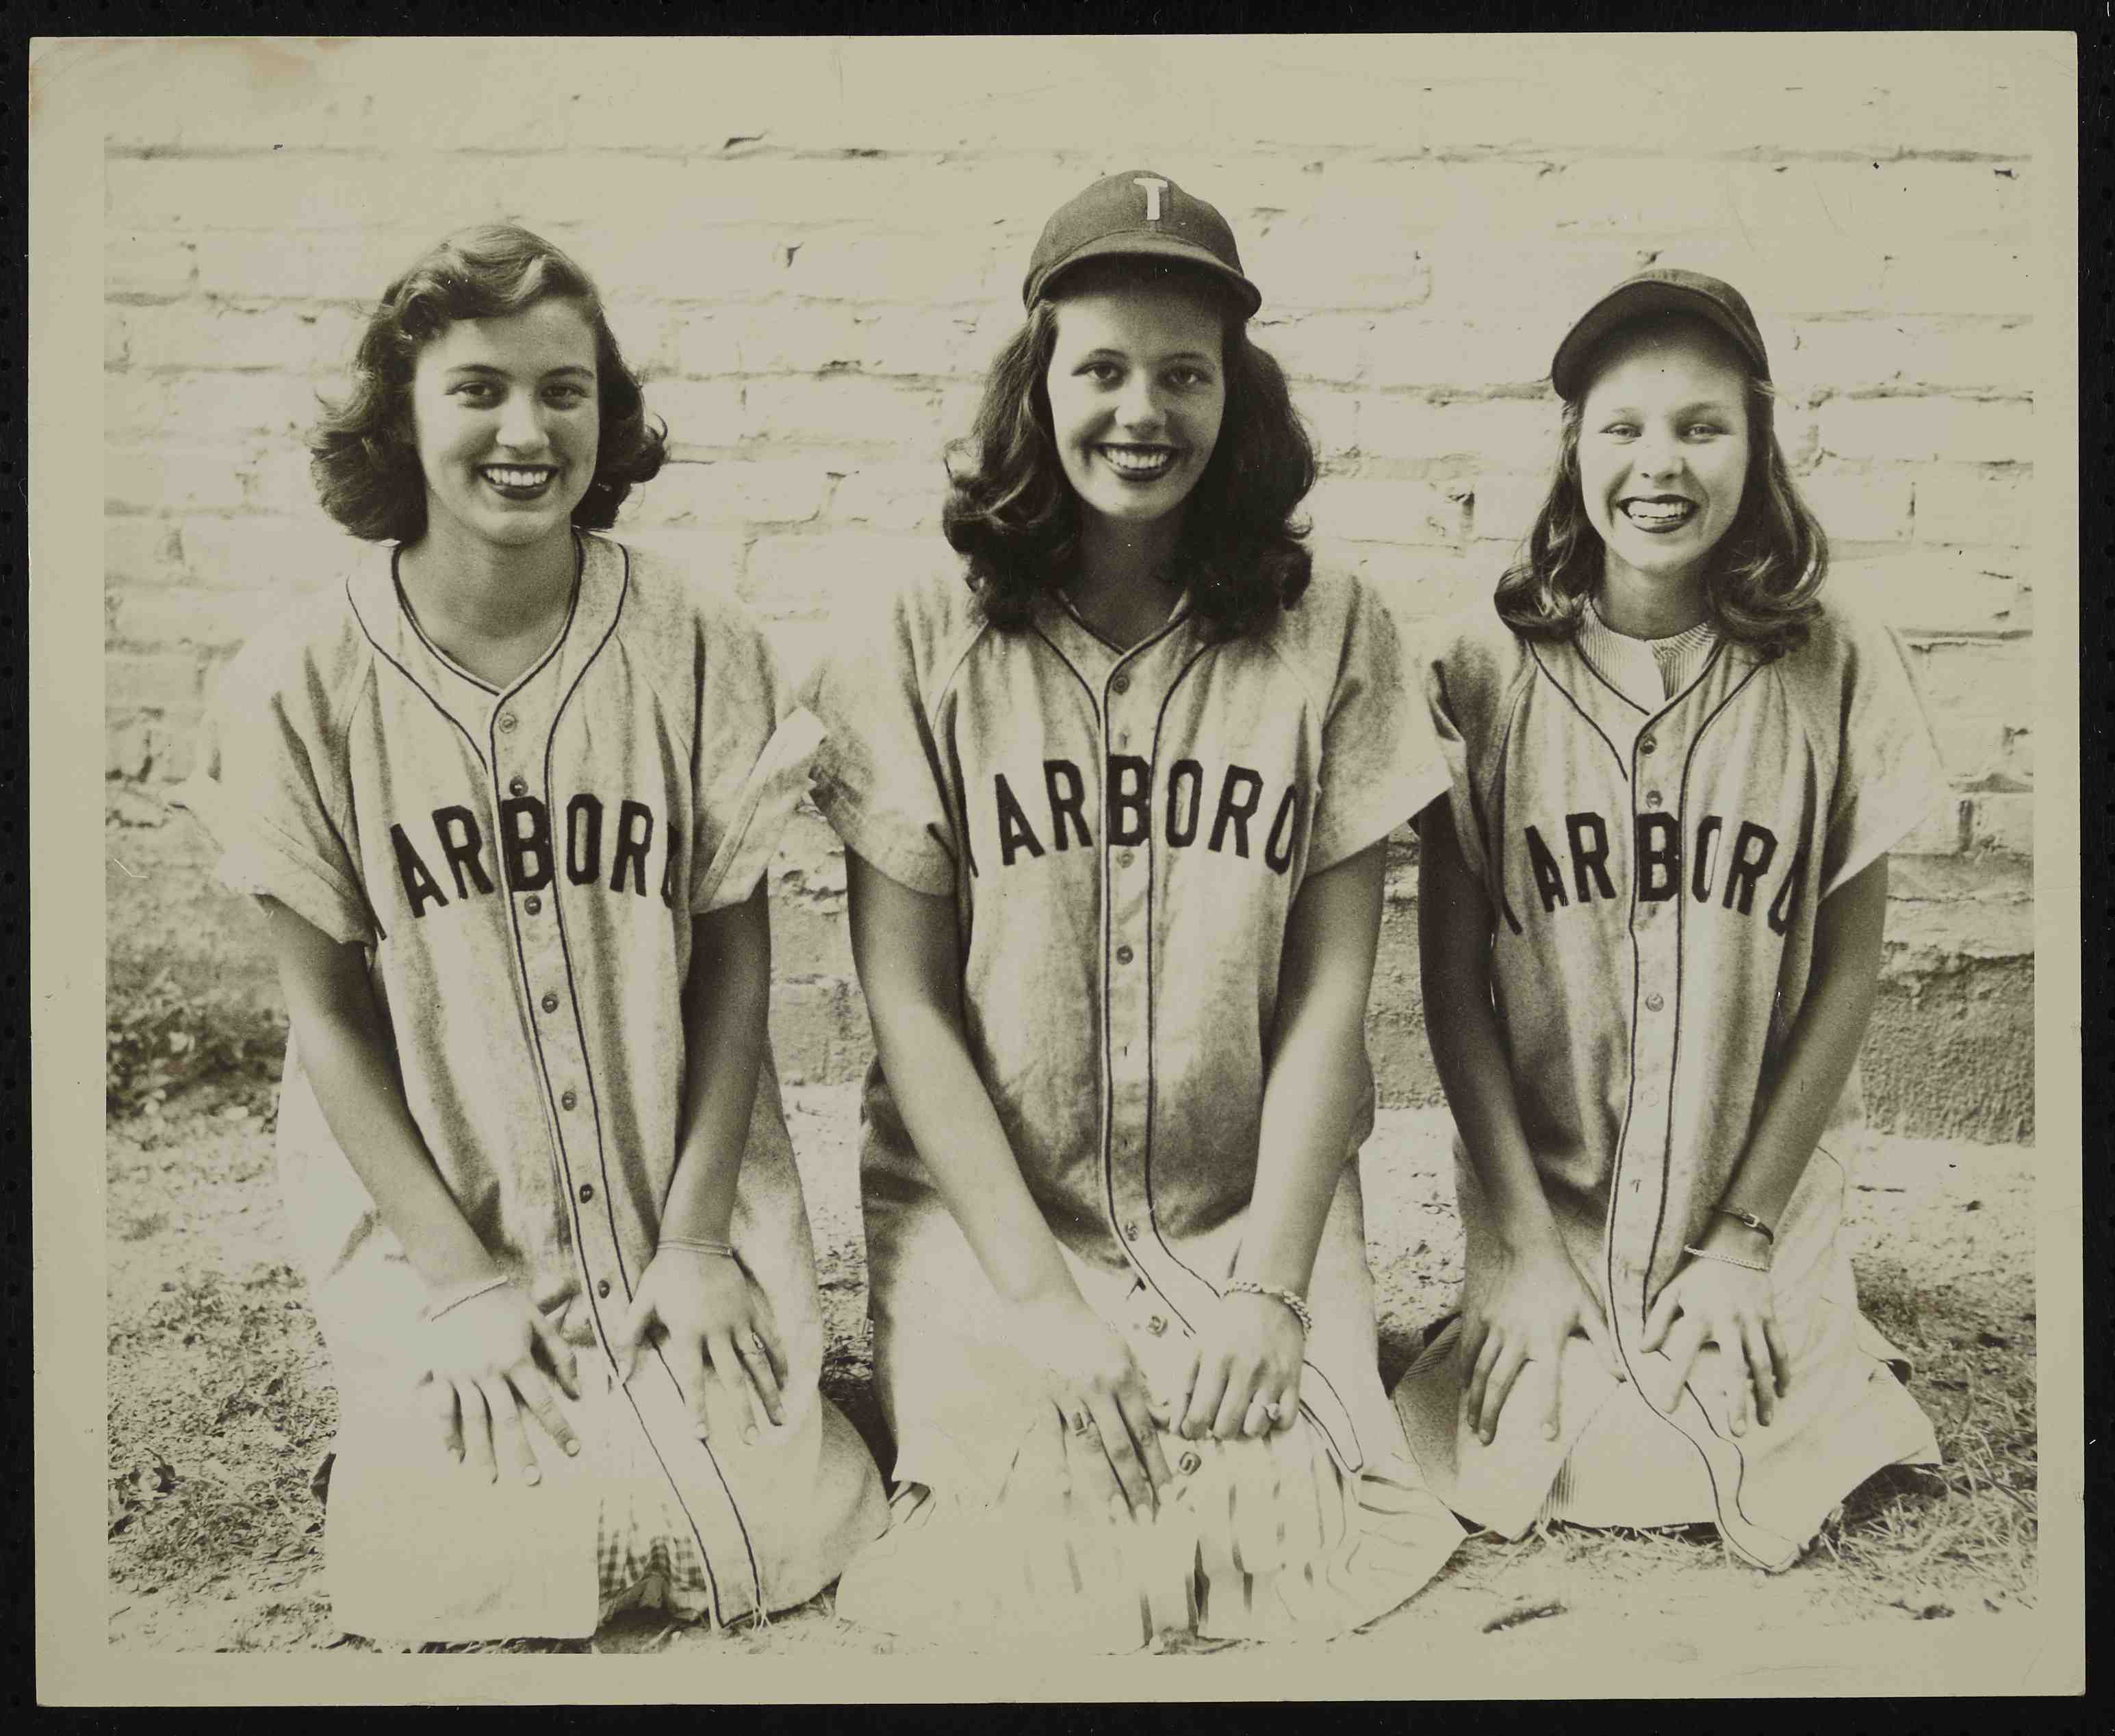 M.S. Brown: Miscellaneous Baseball Photos, Image 87